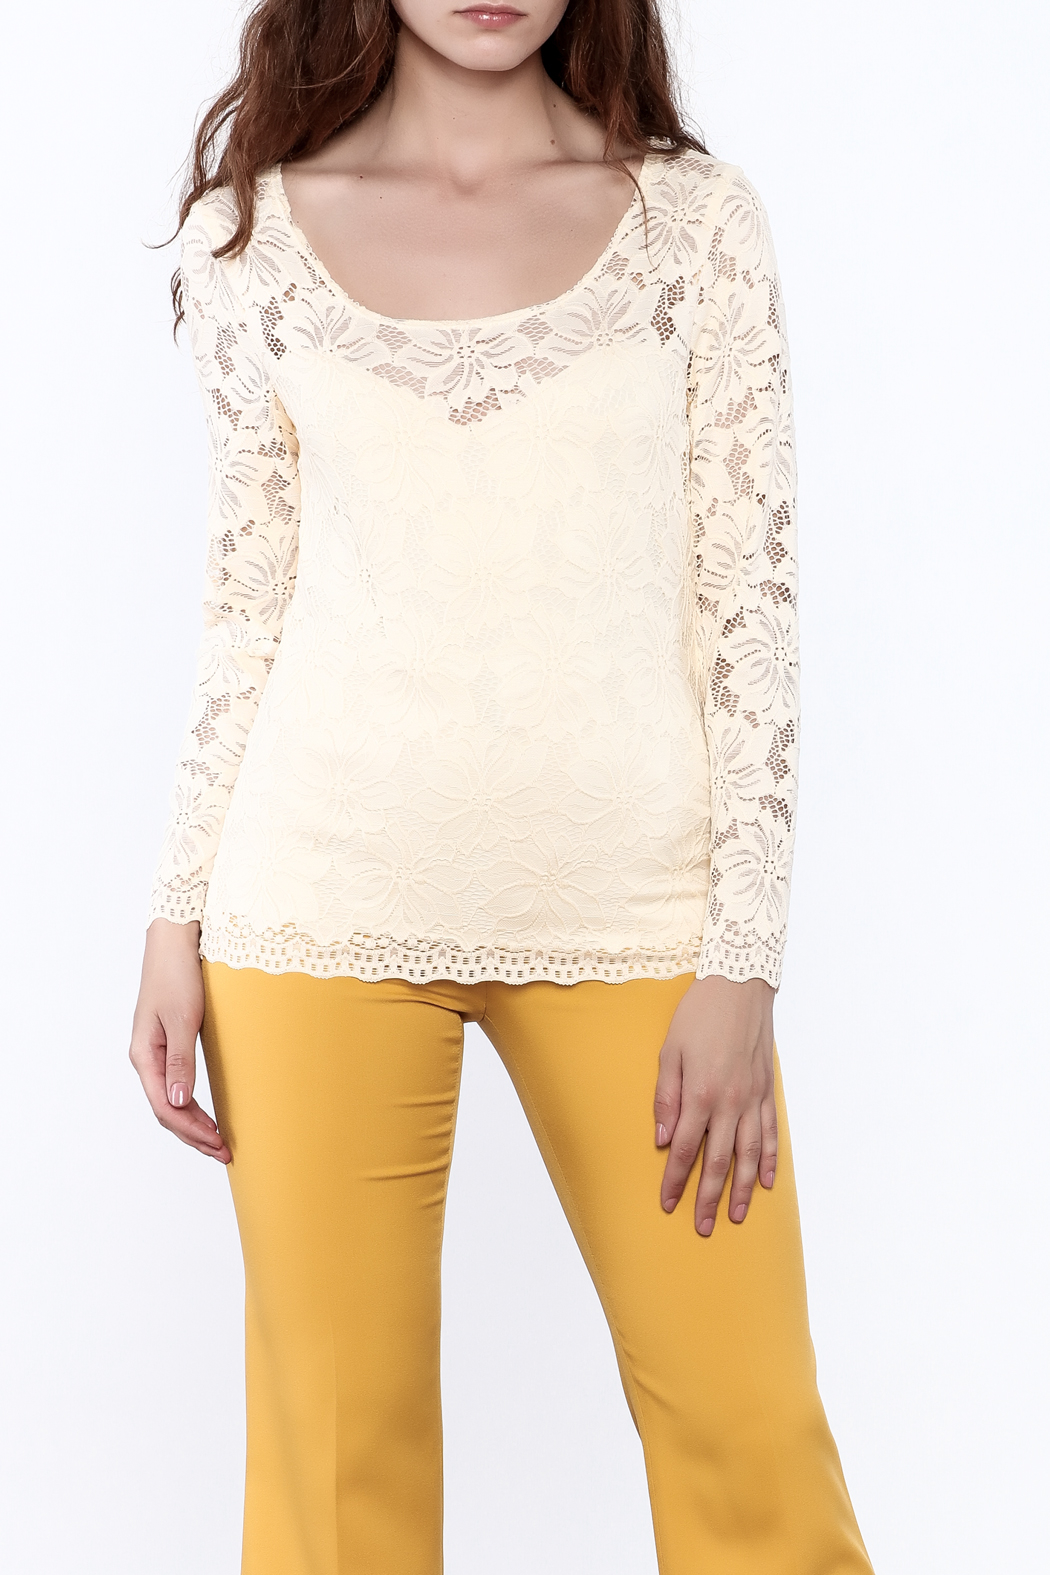 Sharon Max Ivory Lace Top - Front Cropped Image